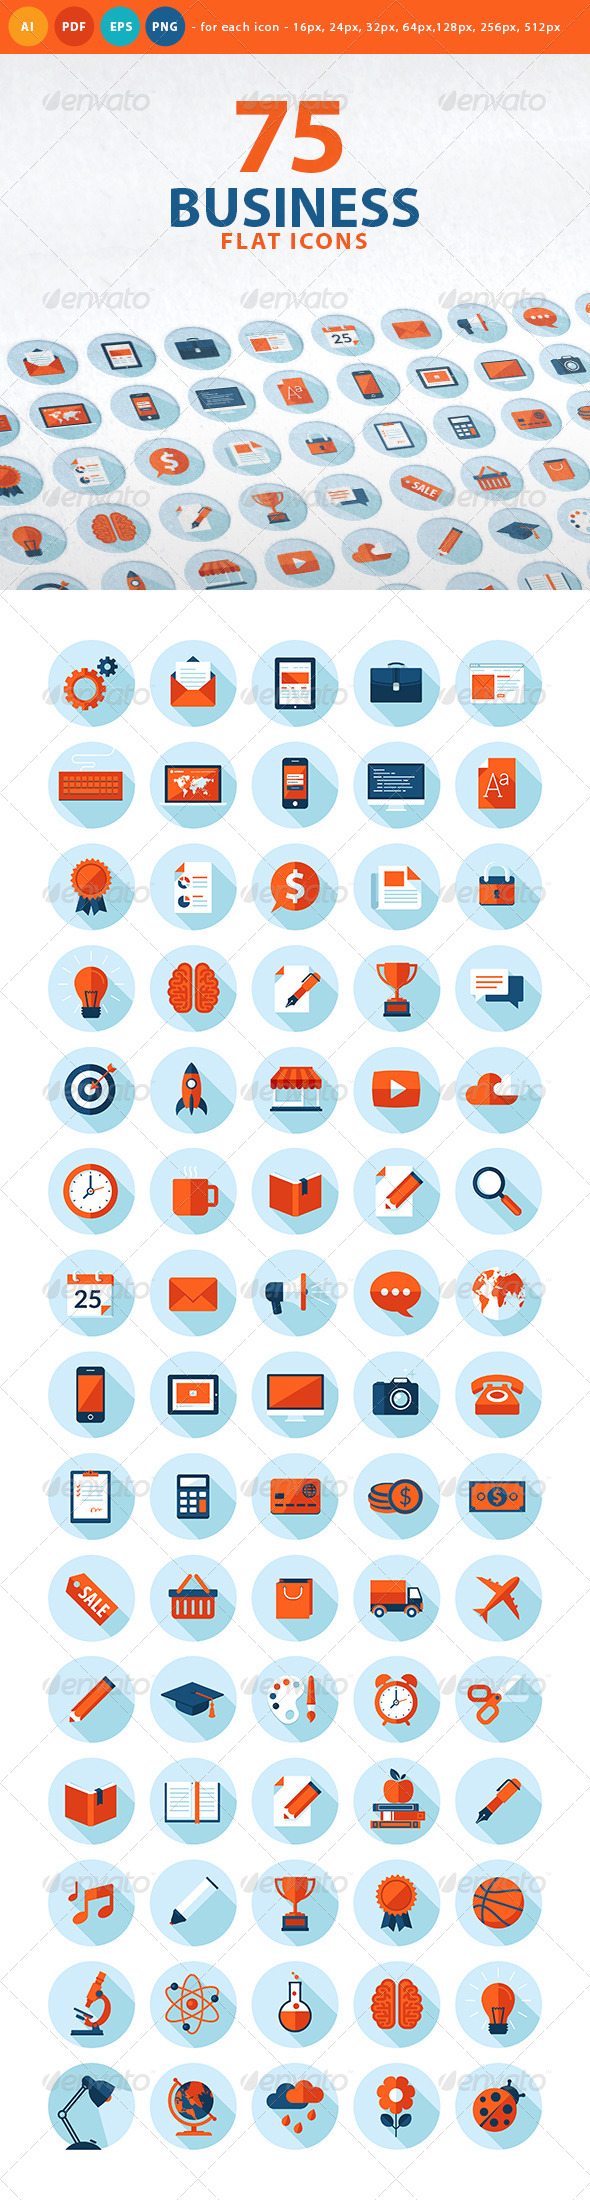 GraphicRiver Set of Flat Design Business Icons 7758907